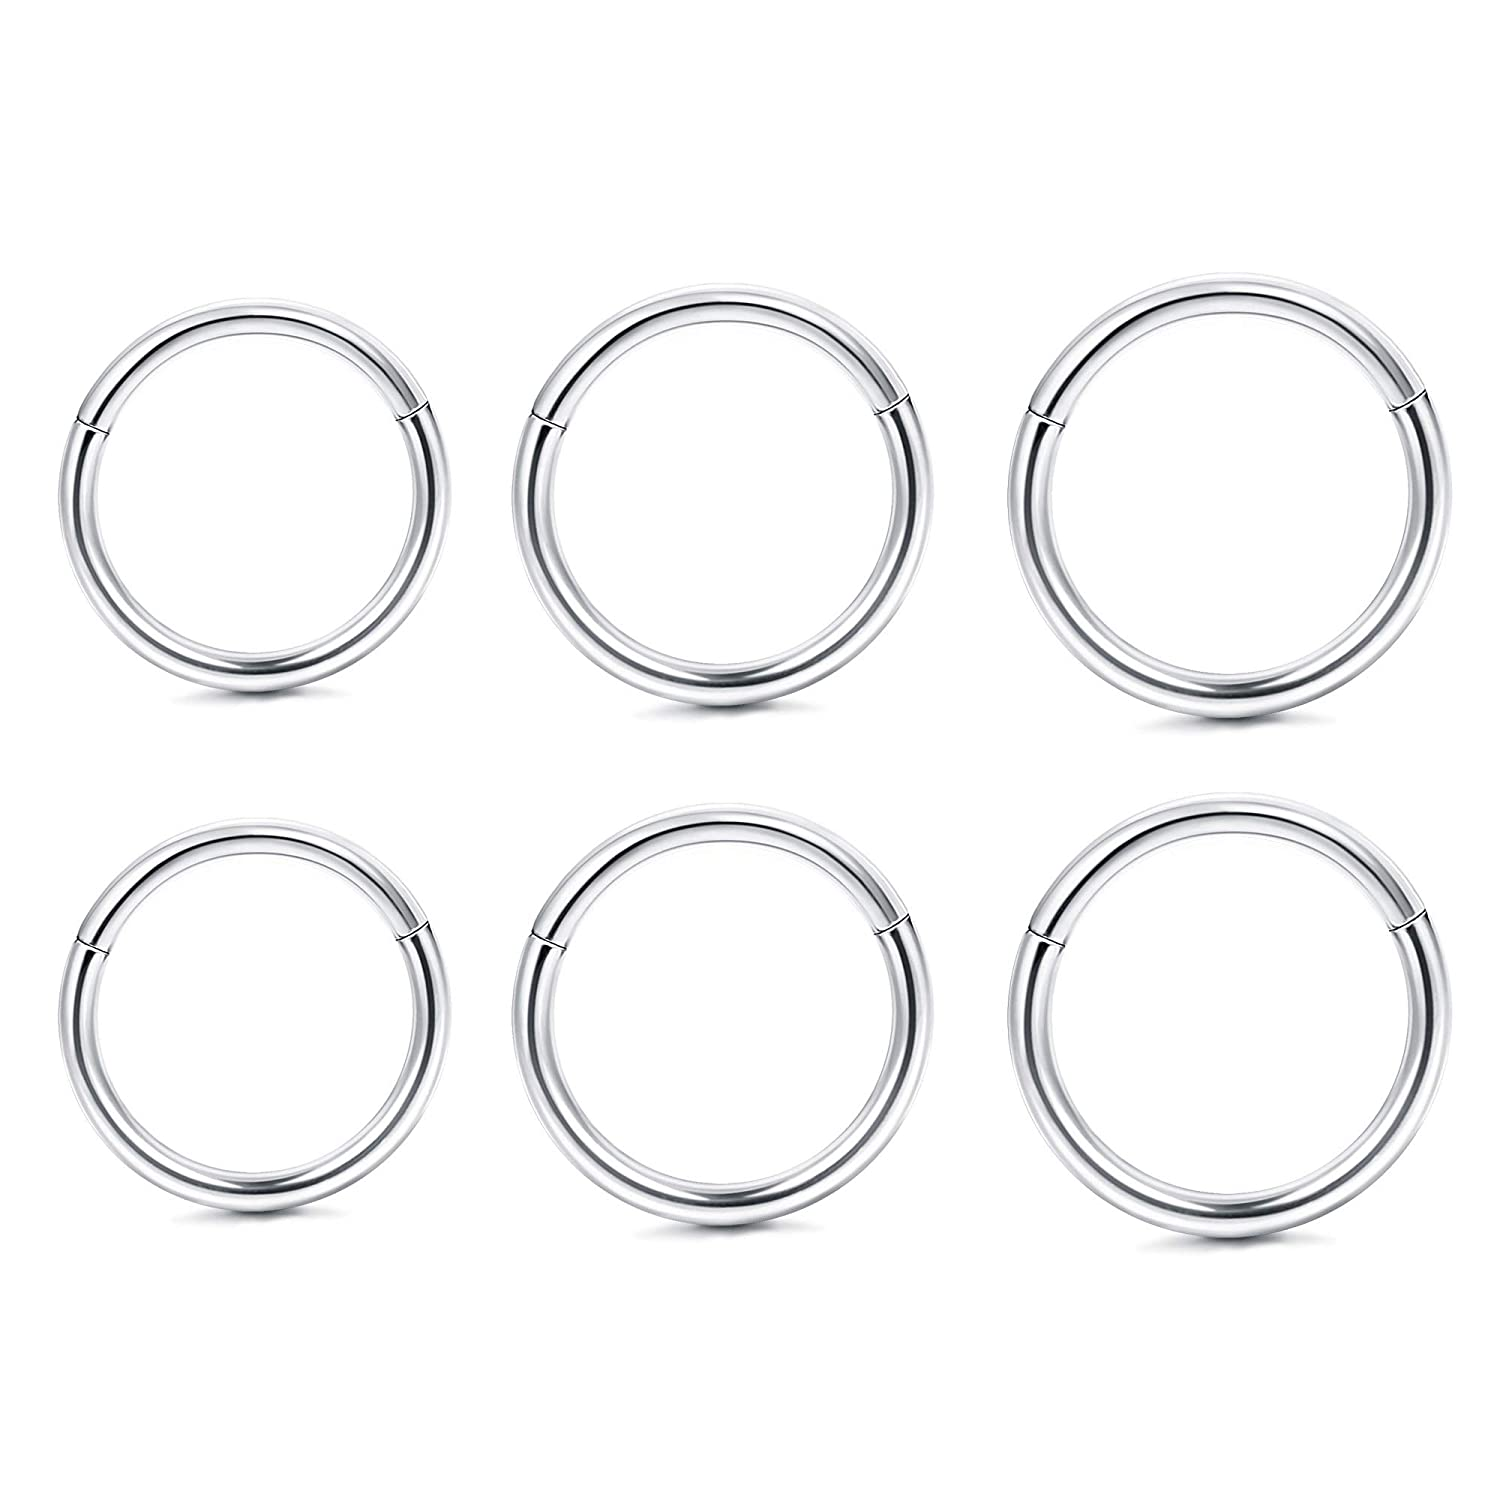 6fa87980c2ff1 Amazon.com: LOYALLOOK 18G 3Pairs Stainless Steel Cartilage Earrings ...